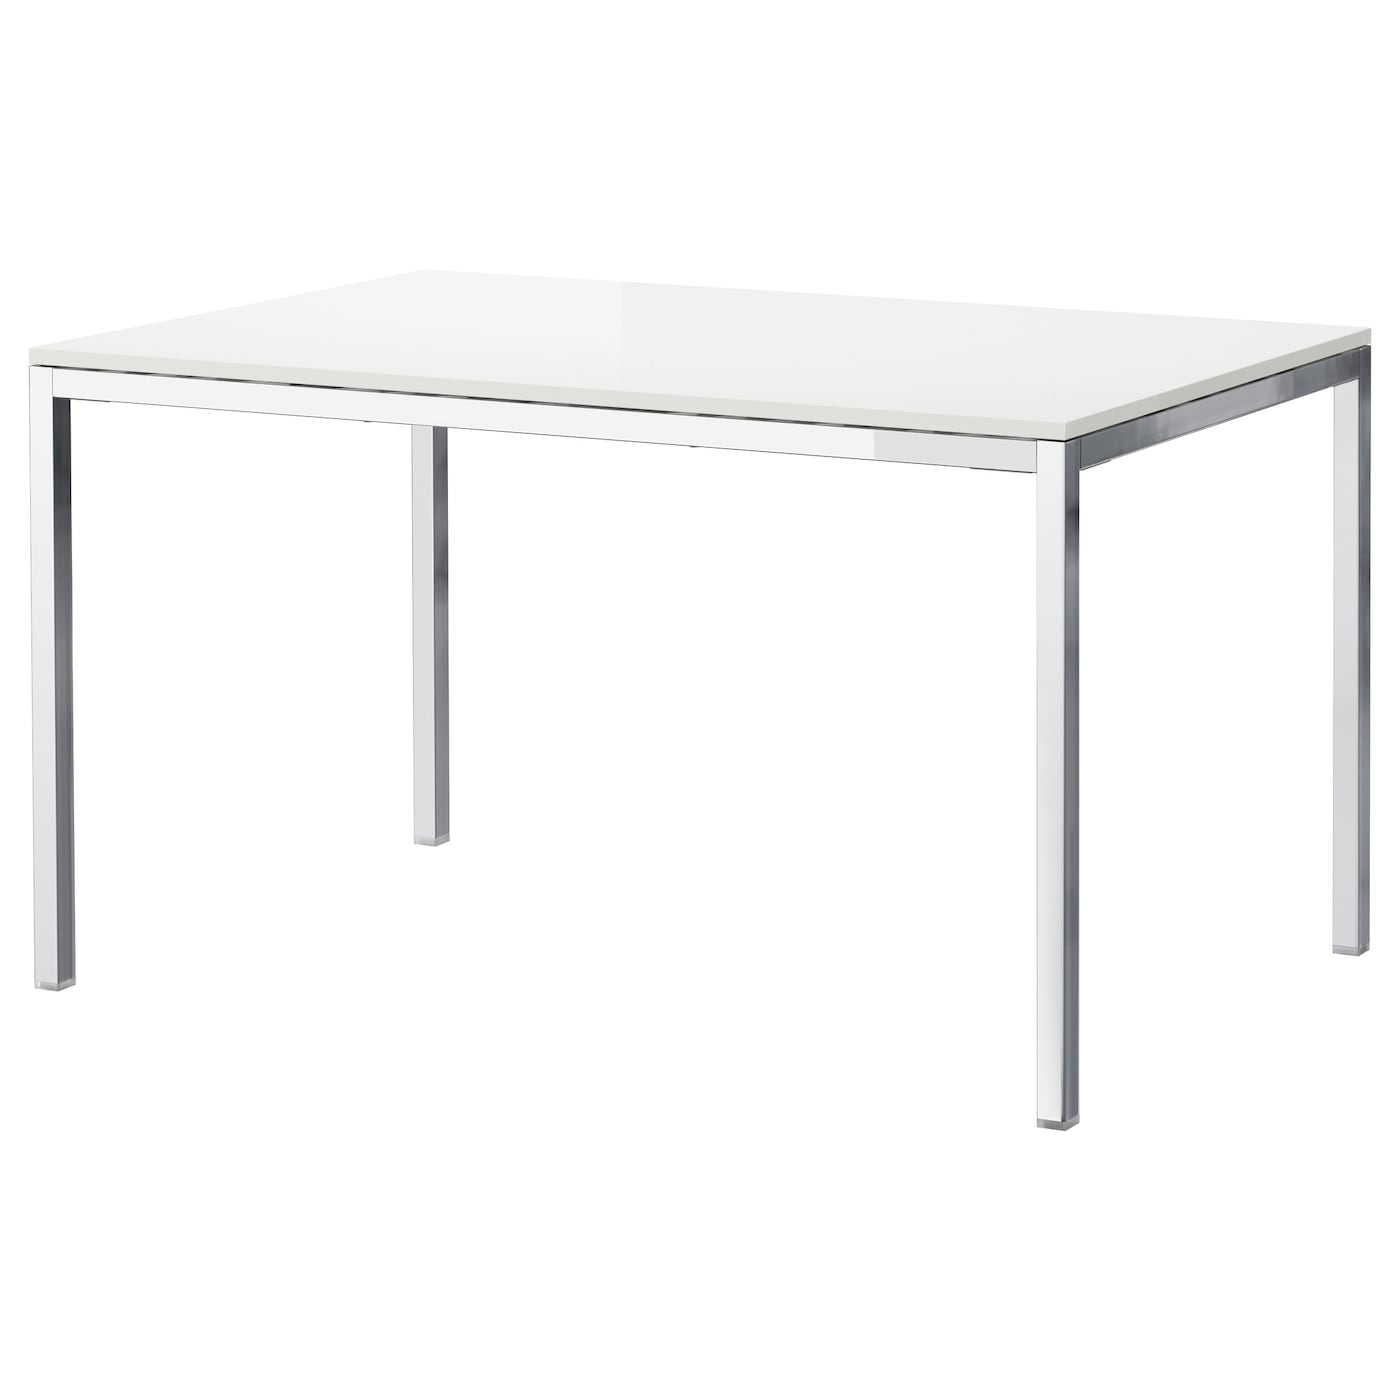 torsby table chrome plated high gloss white 135 x 85 cm ikea. Black Bedroom Furniture Sets. Home Design Ideas